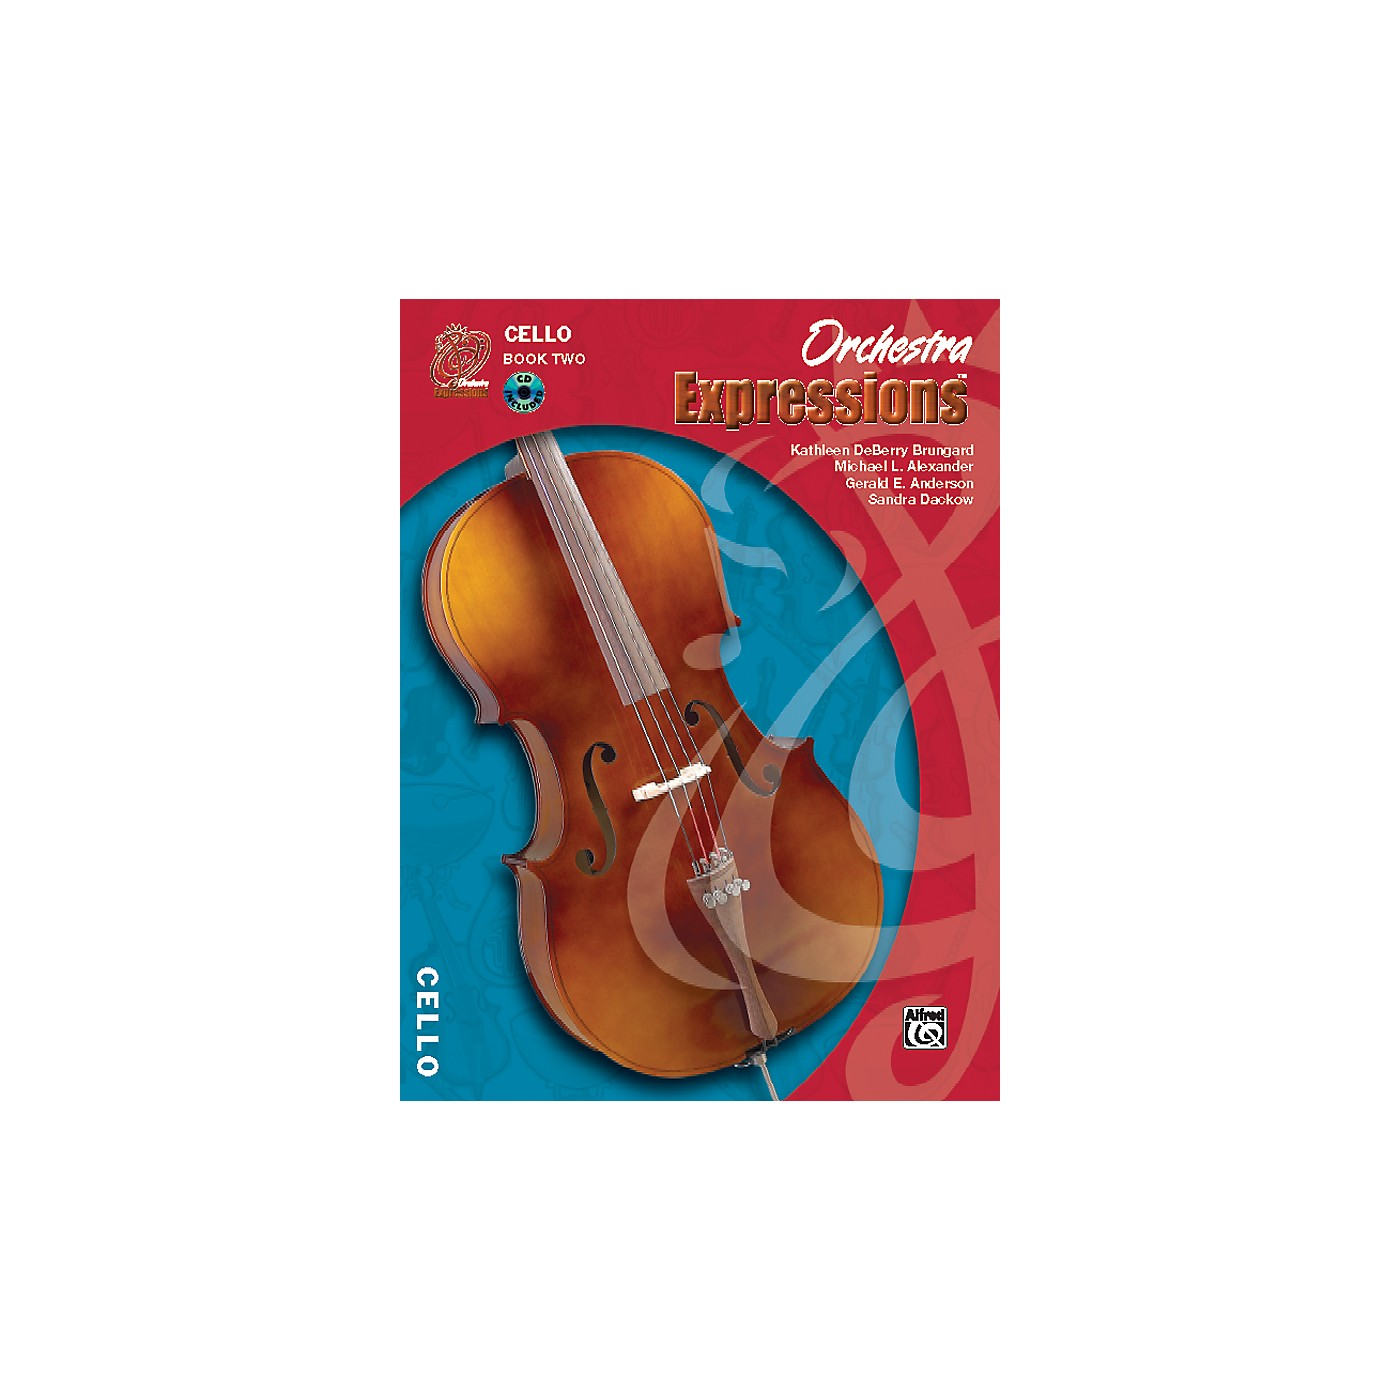 Alfred Orchestra Expressions Book Two Student Edition Cello Book & CD 1 thumbnail